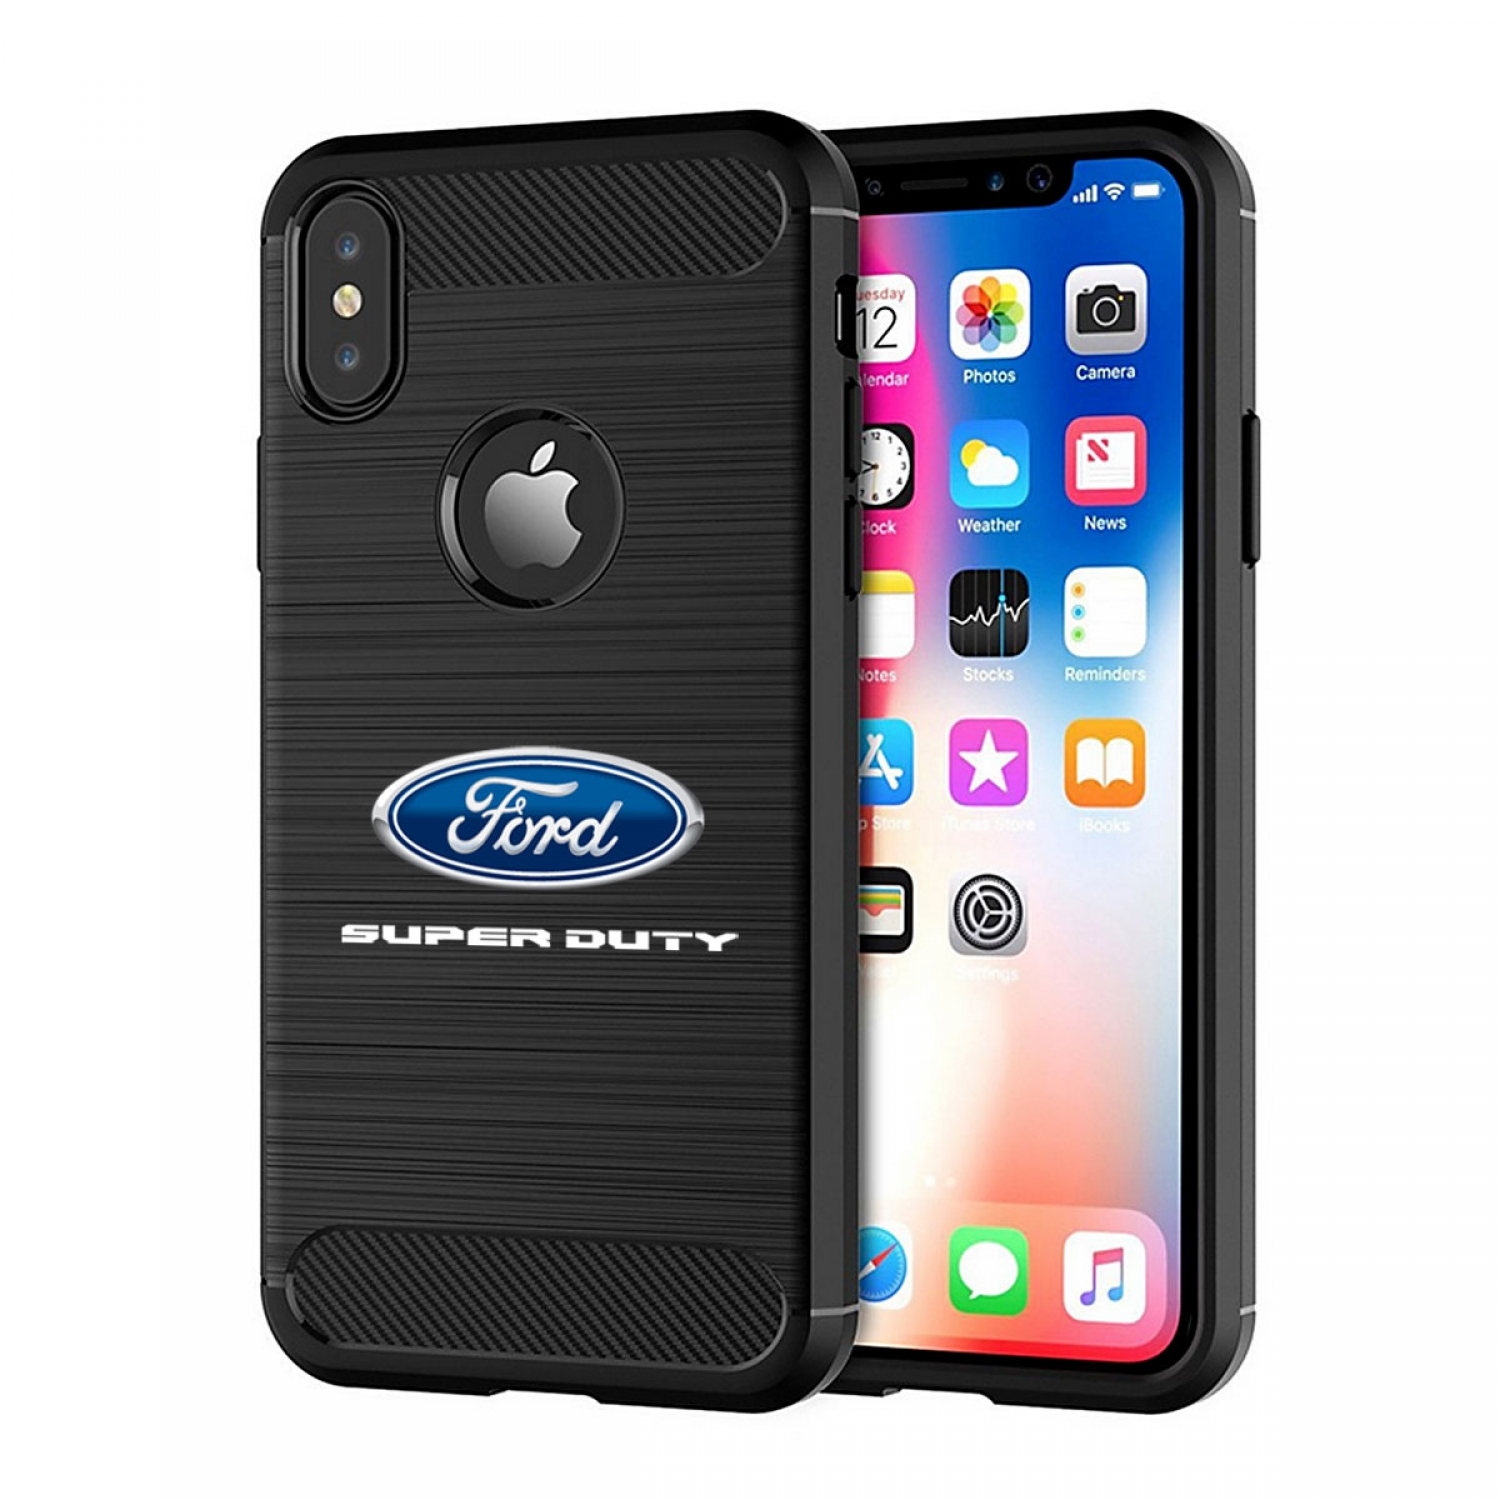 Ford Super Duty iPhone X TPU Shockproof Black Carbon Fiber Textures Stripes Cell Phone Case